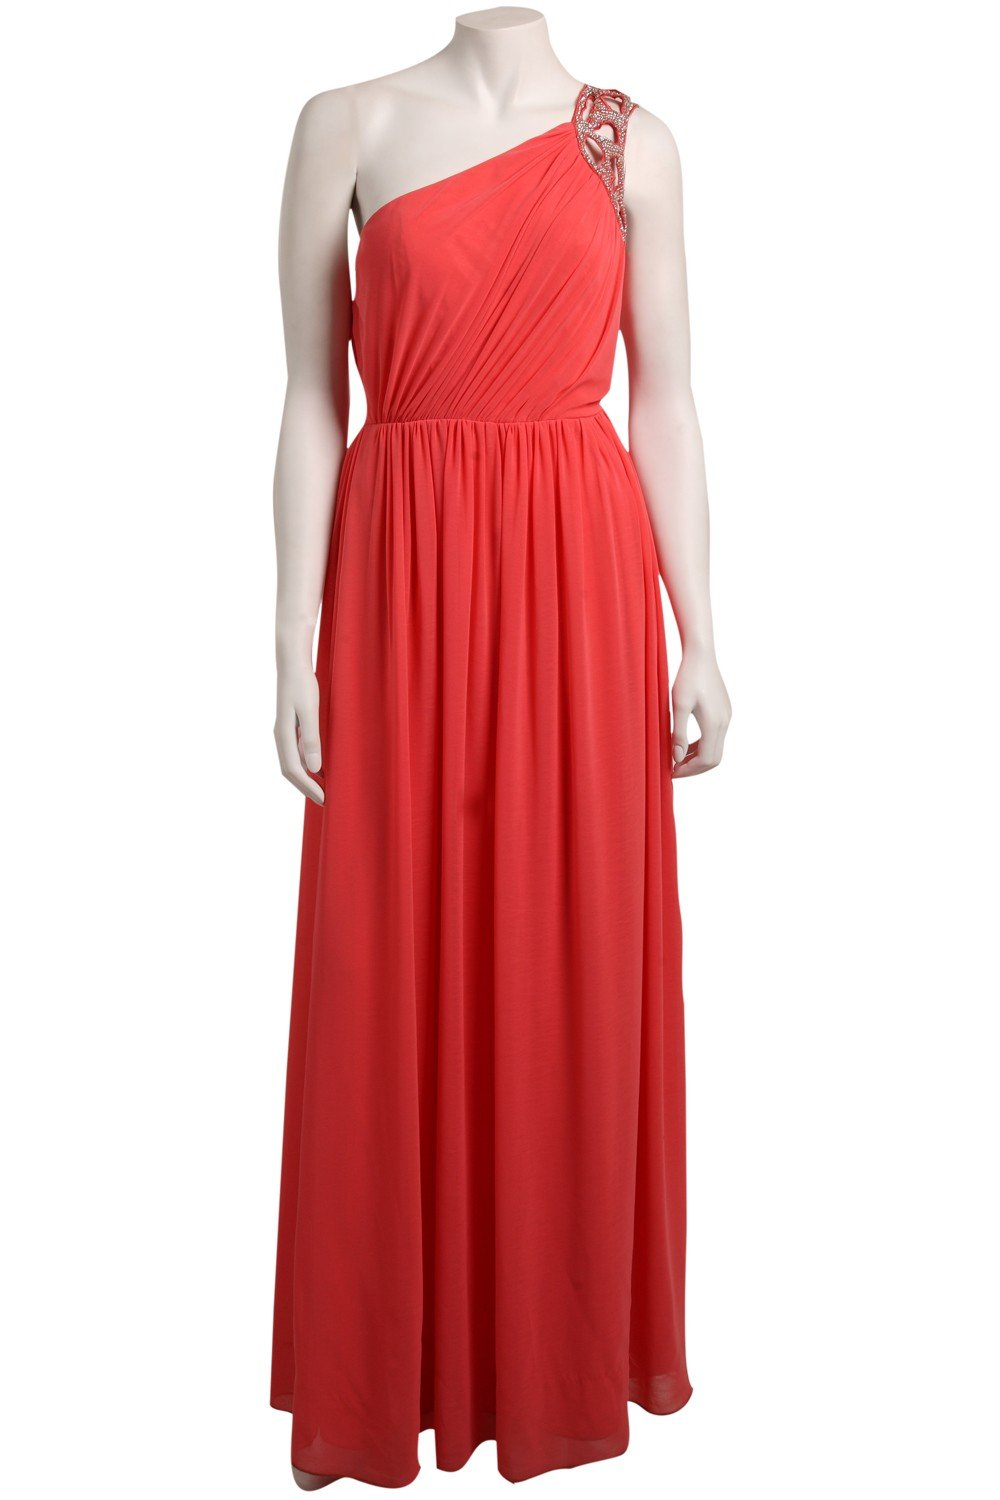 Women's Coral Embroidered Off Shoulder Maxi Dress (Short Inseam Now Available) in rapture rose made of jersey. This spring dress or summer dress is perfect for Easter, to wear as a wedding guest, for graduation, and for every day.